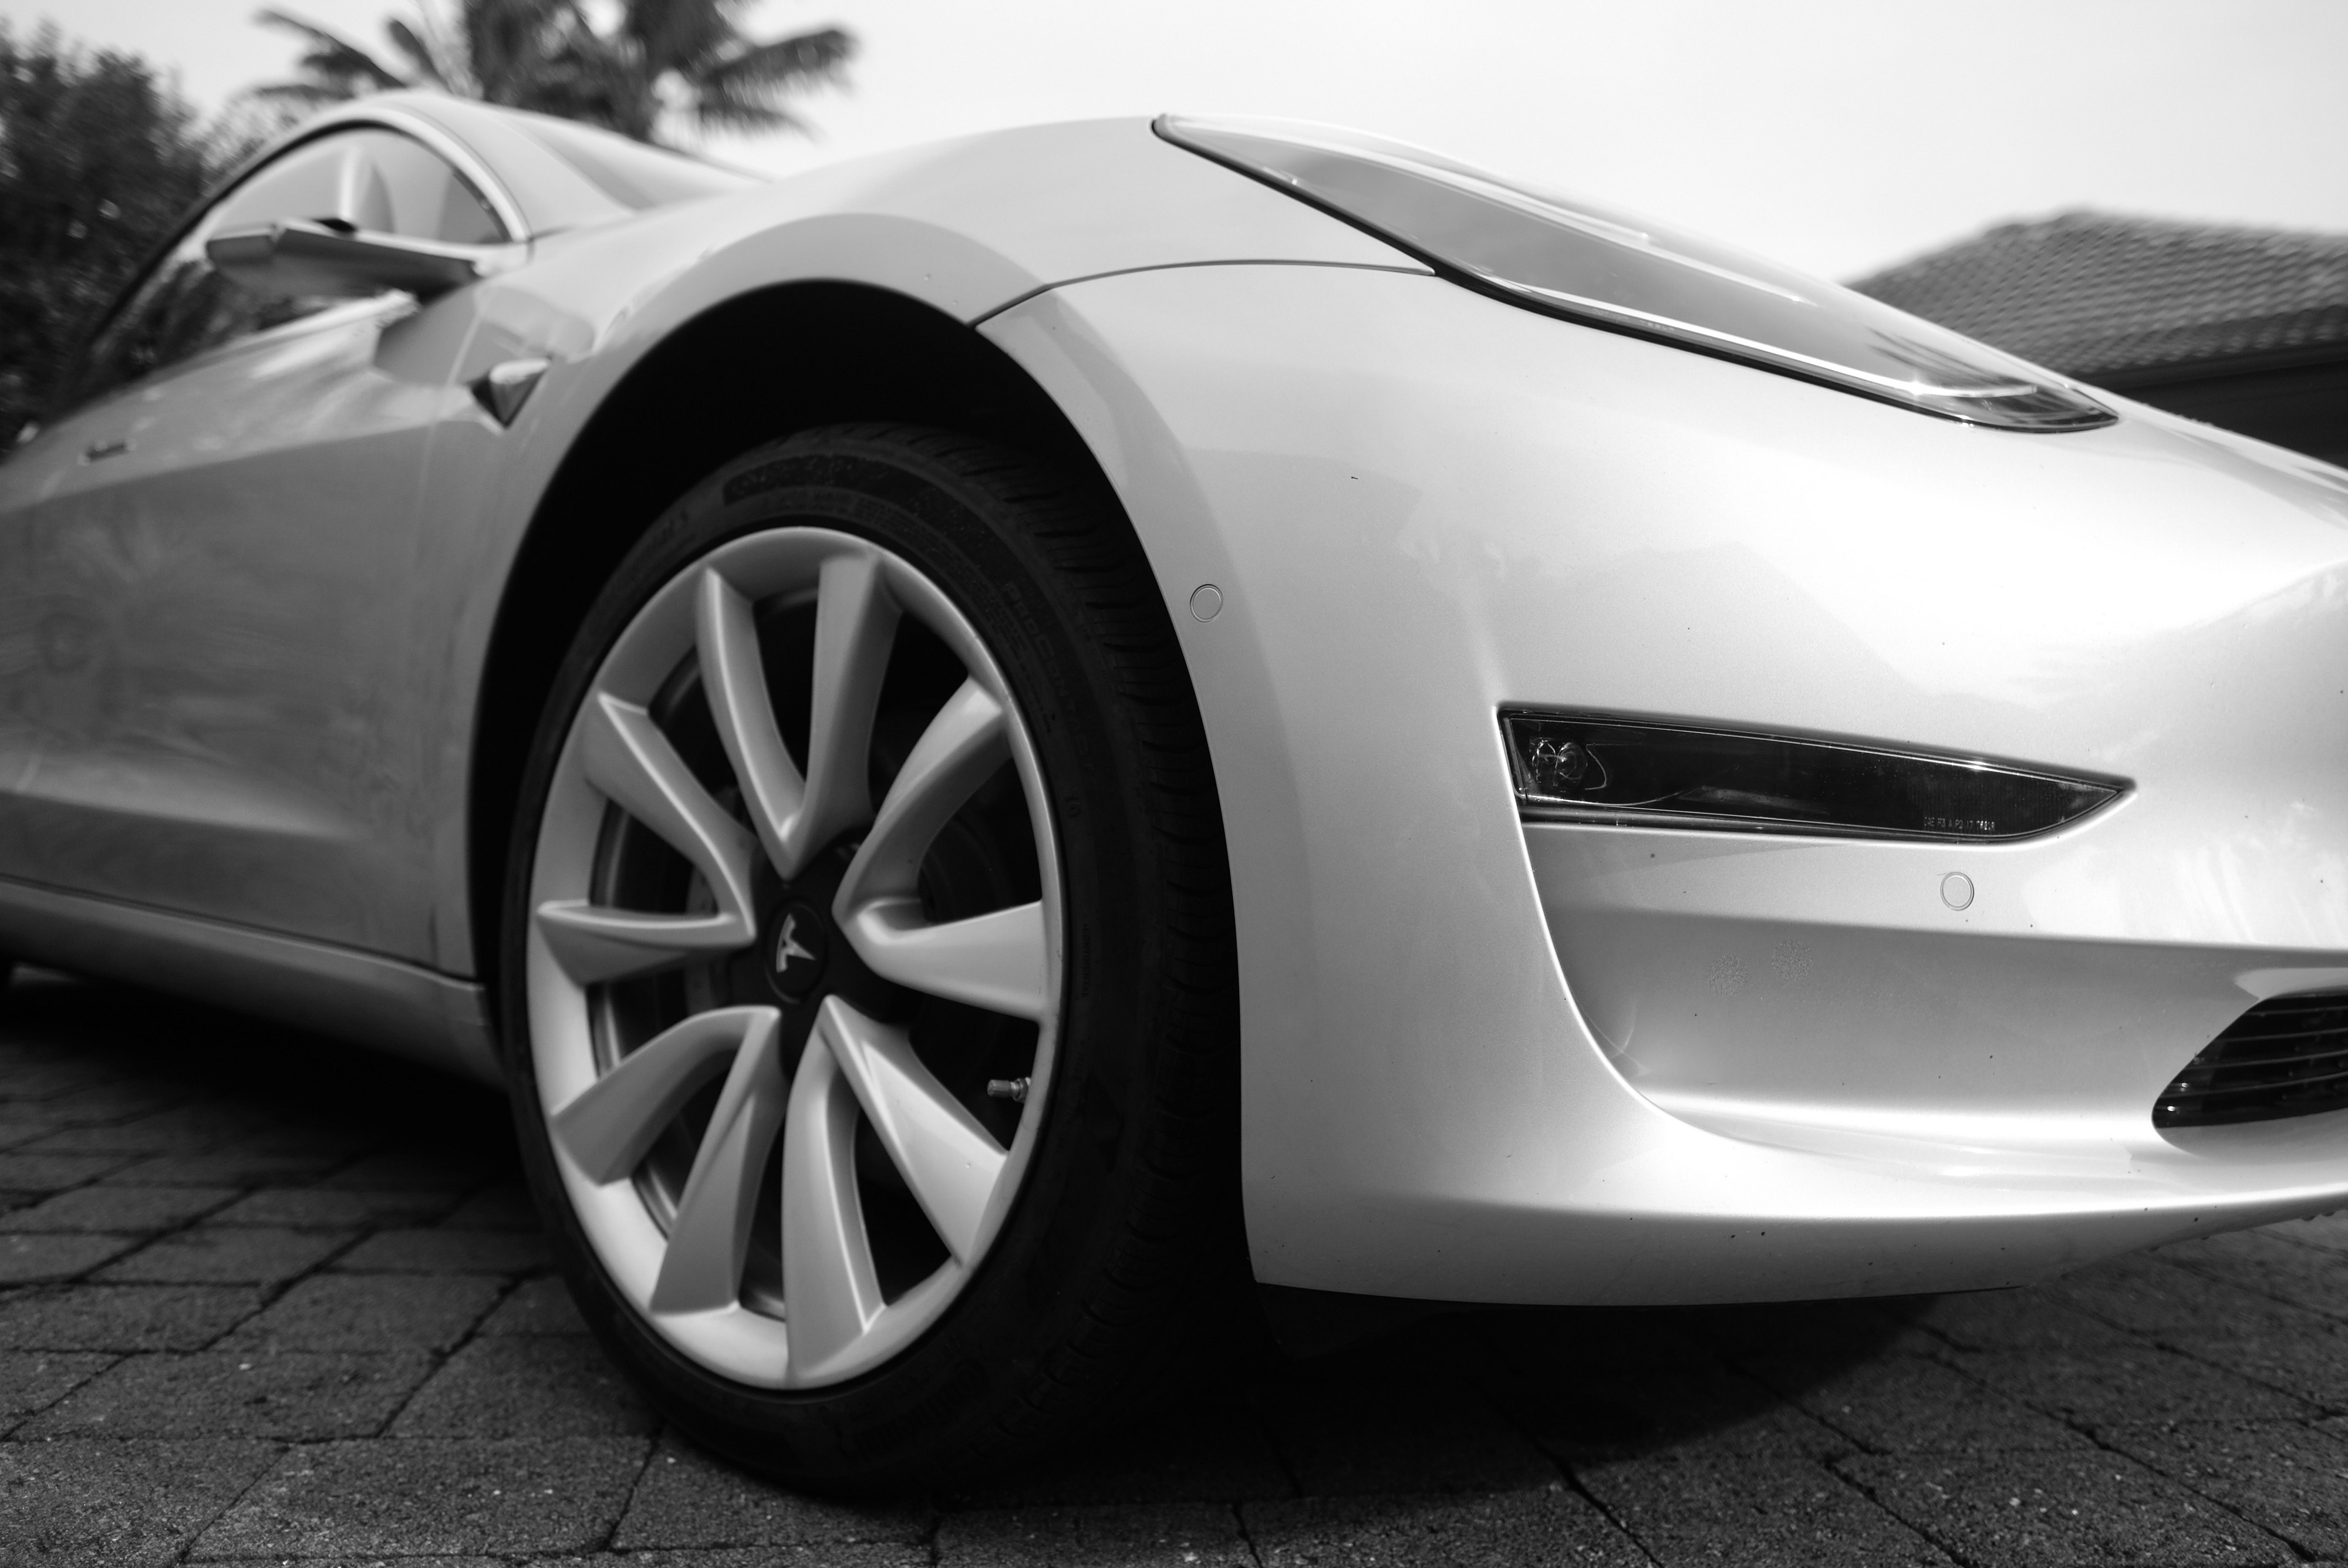 On the Tesla Model 3 - Noteworthy - The Journal Blog